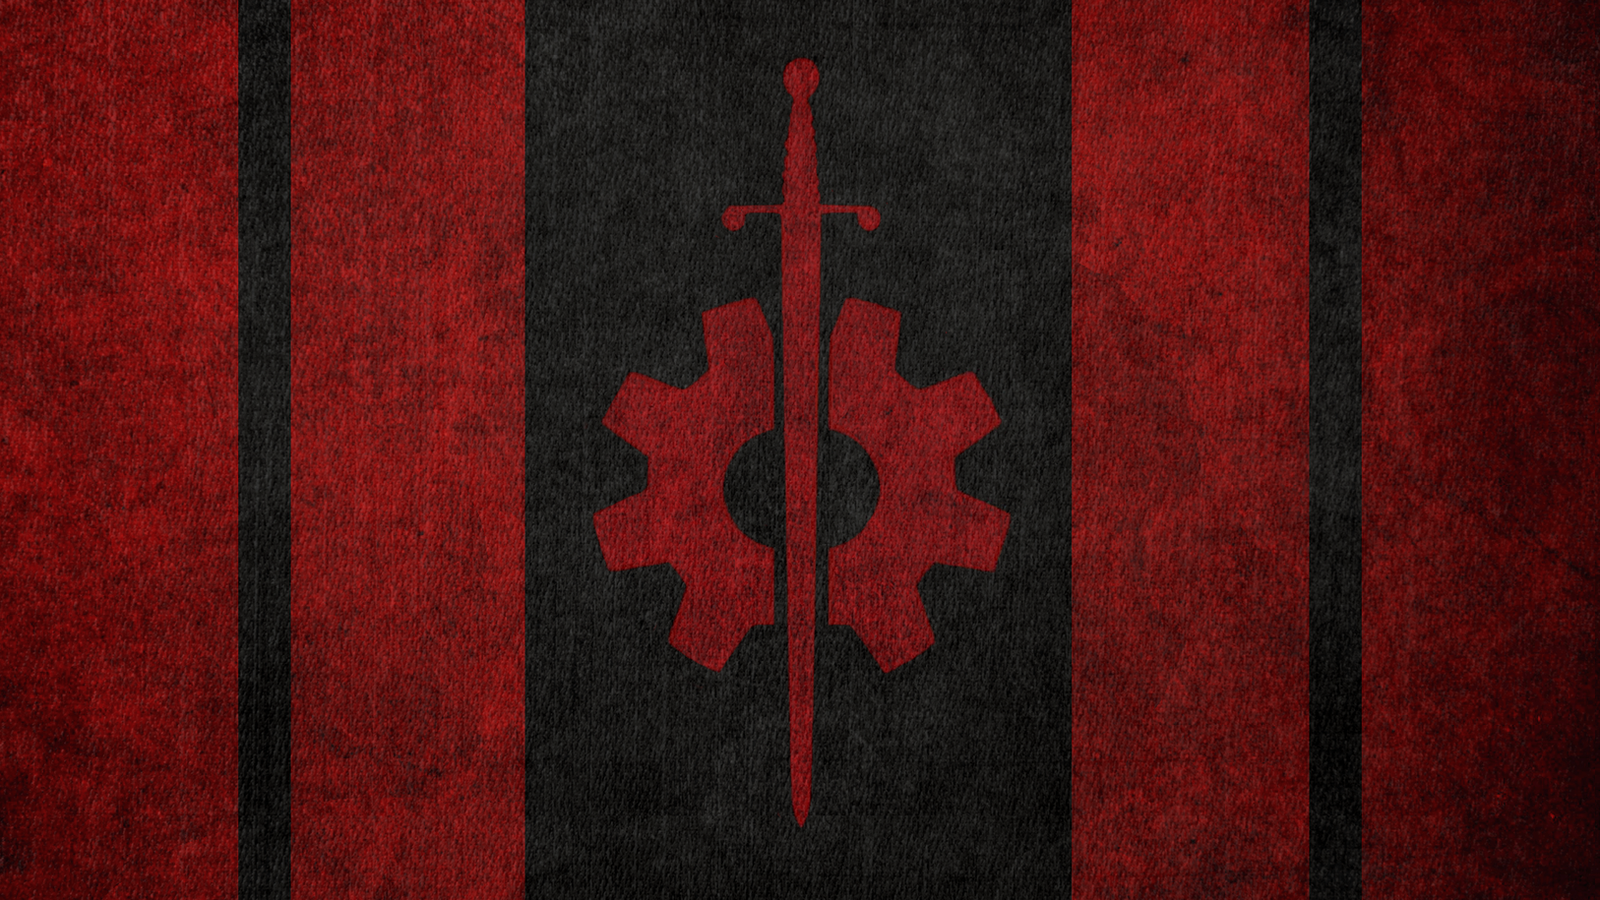 fallout flag of the brotherhood outcasts by okiir on